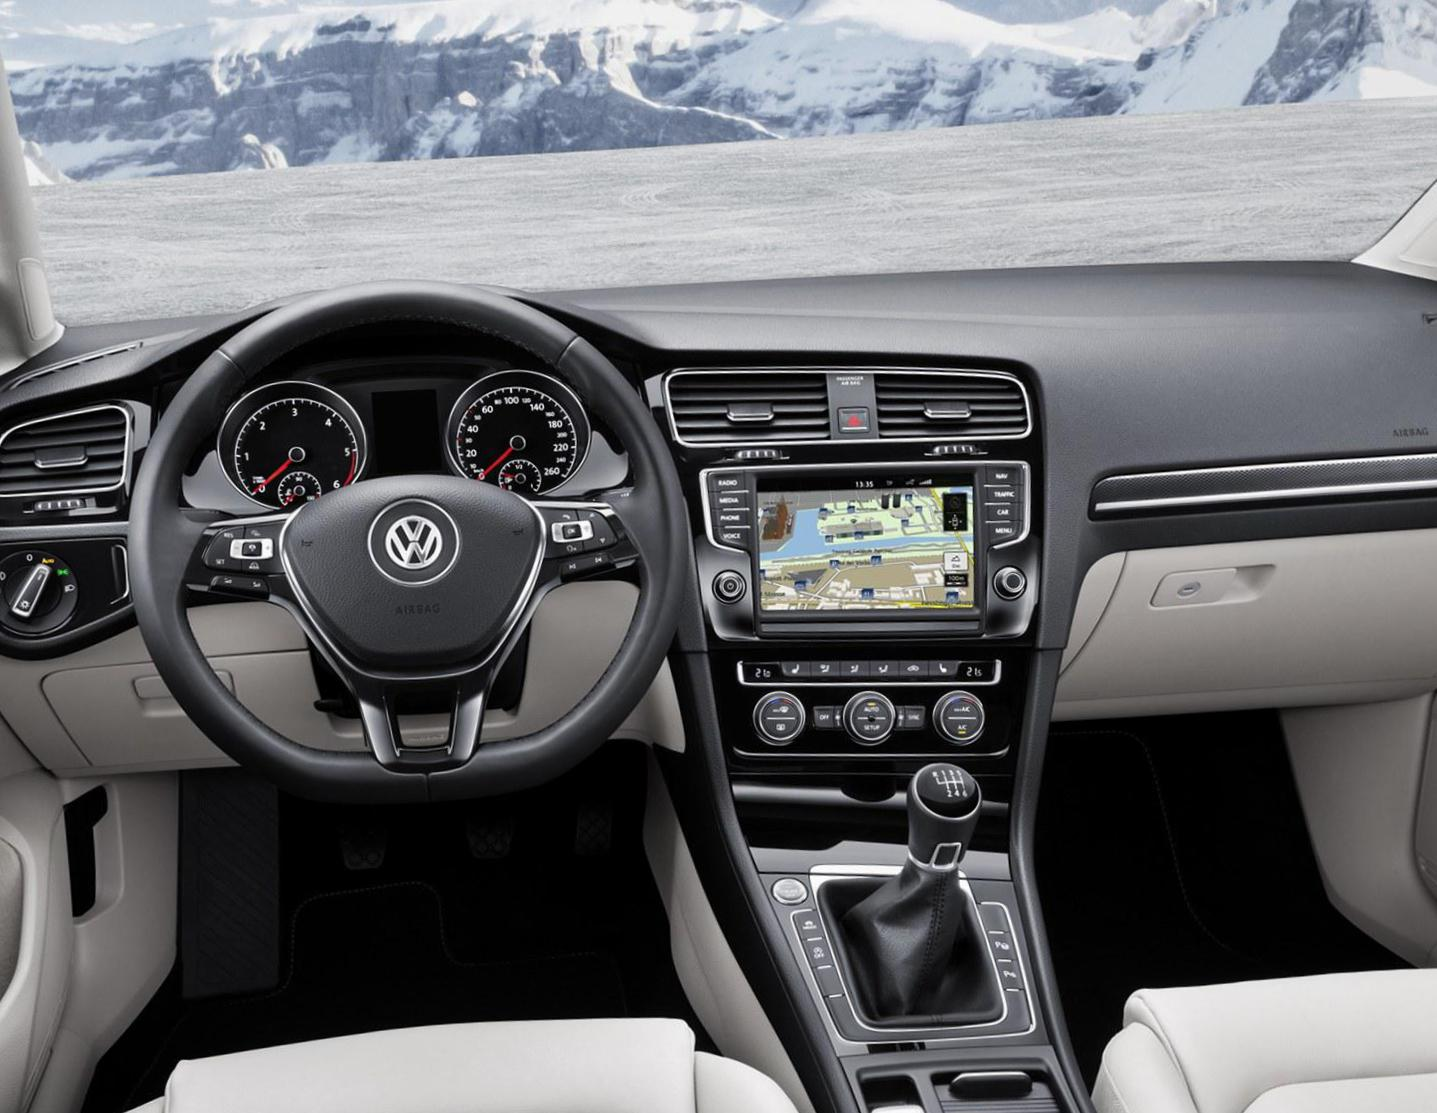 Golf Alltrack Volkswagen Specifications 2007